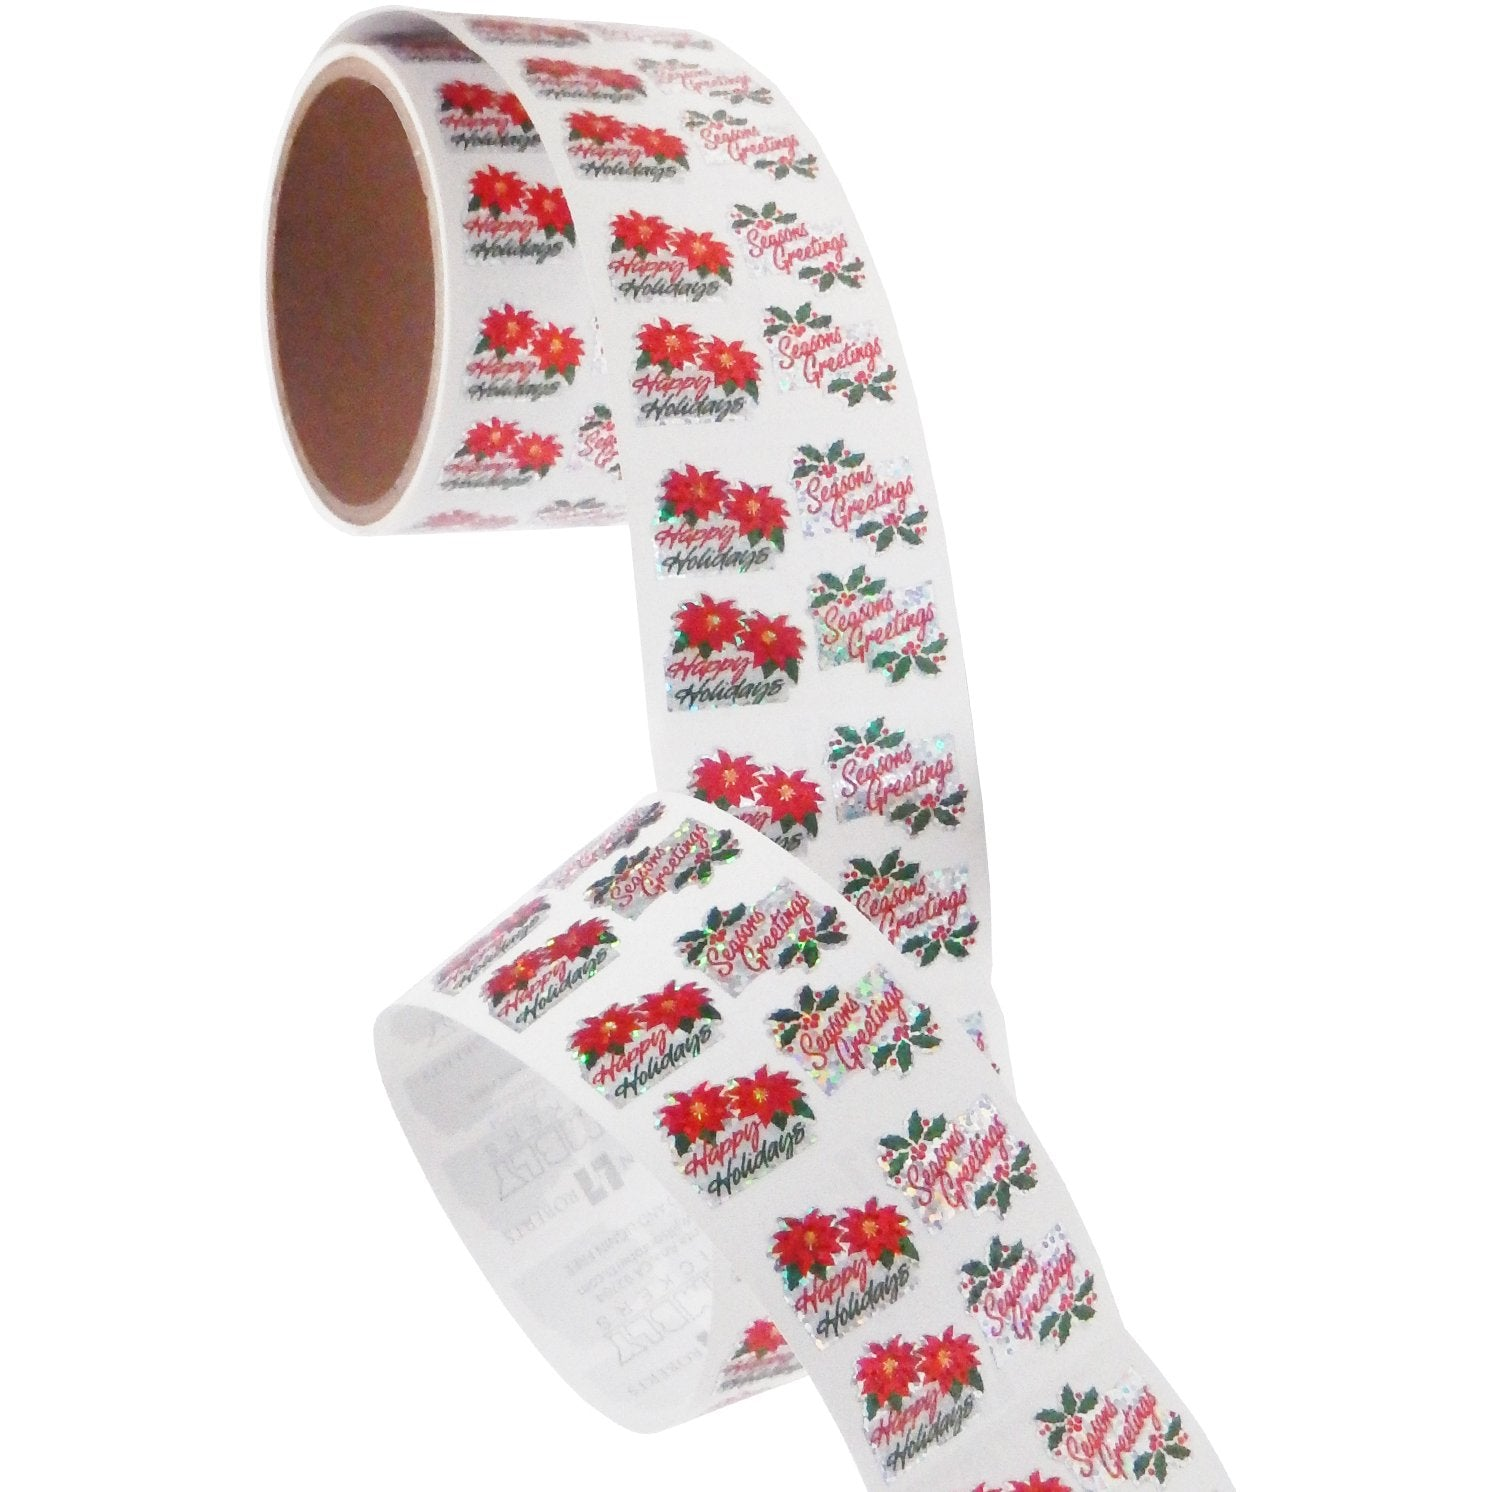 Jillson & Roberts Bulk Roll Prismatic Stickers, Happy Holidays / Seasons Greetings (100 Repeats) - Present Paper